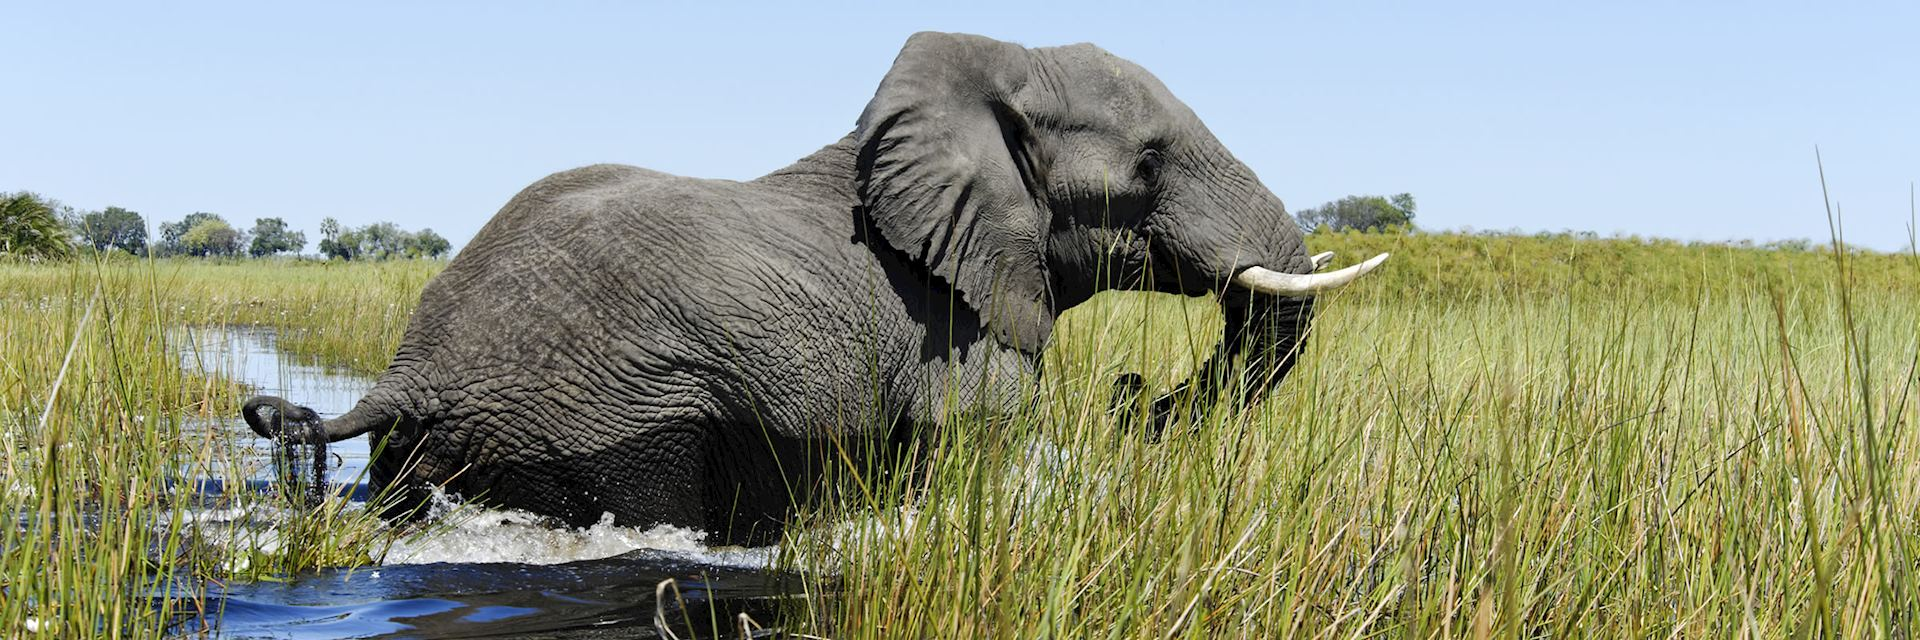 An elephant crosses a channel in the Okavango Delta